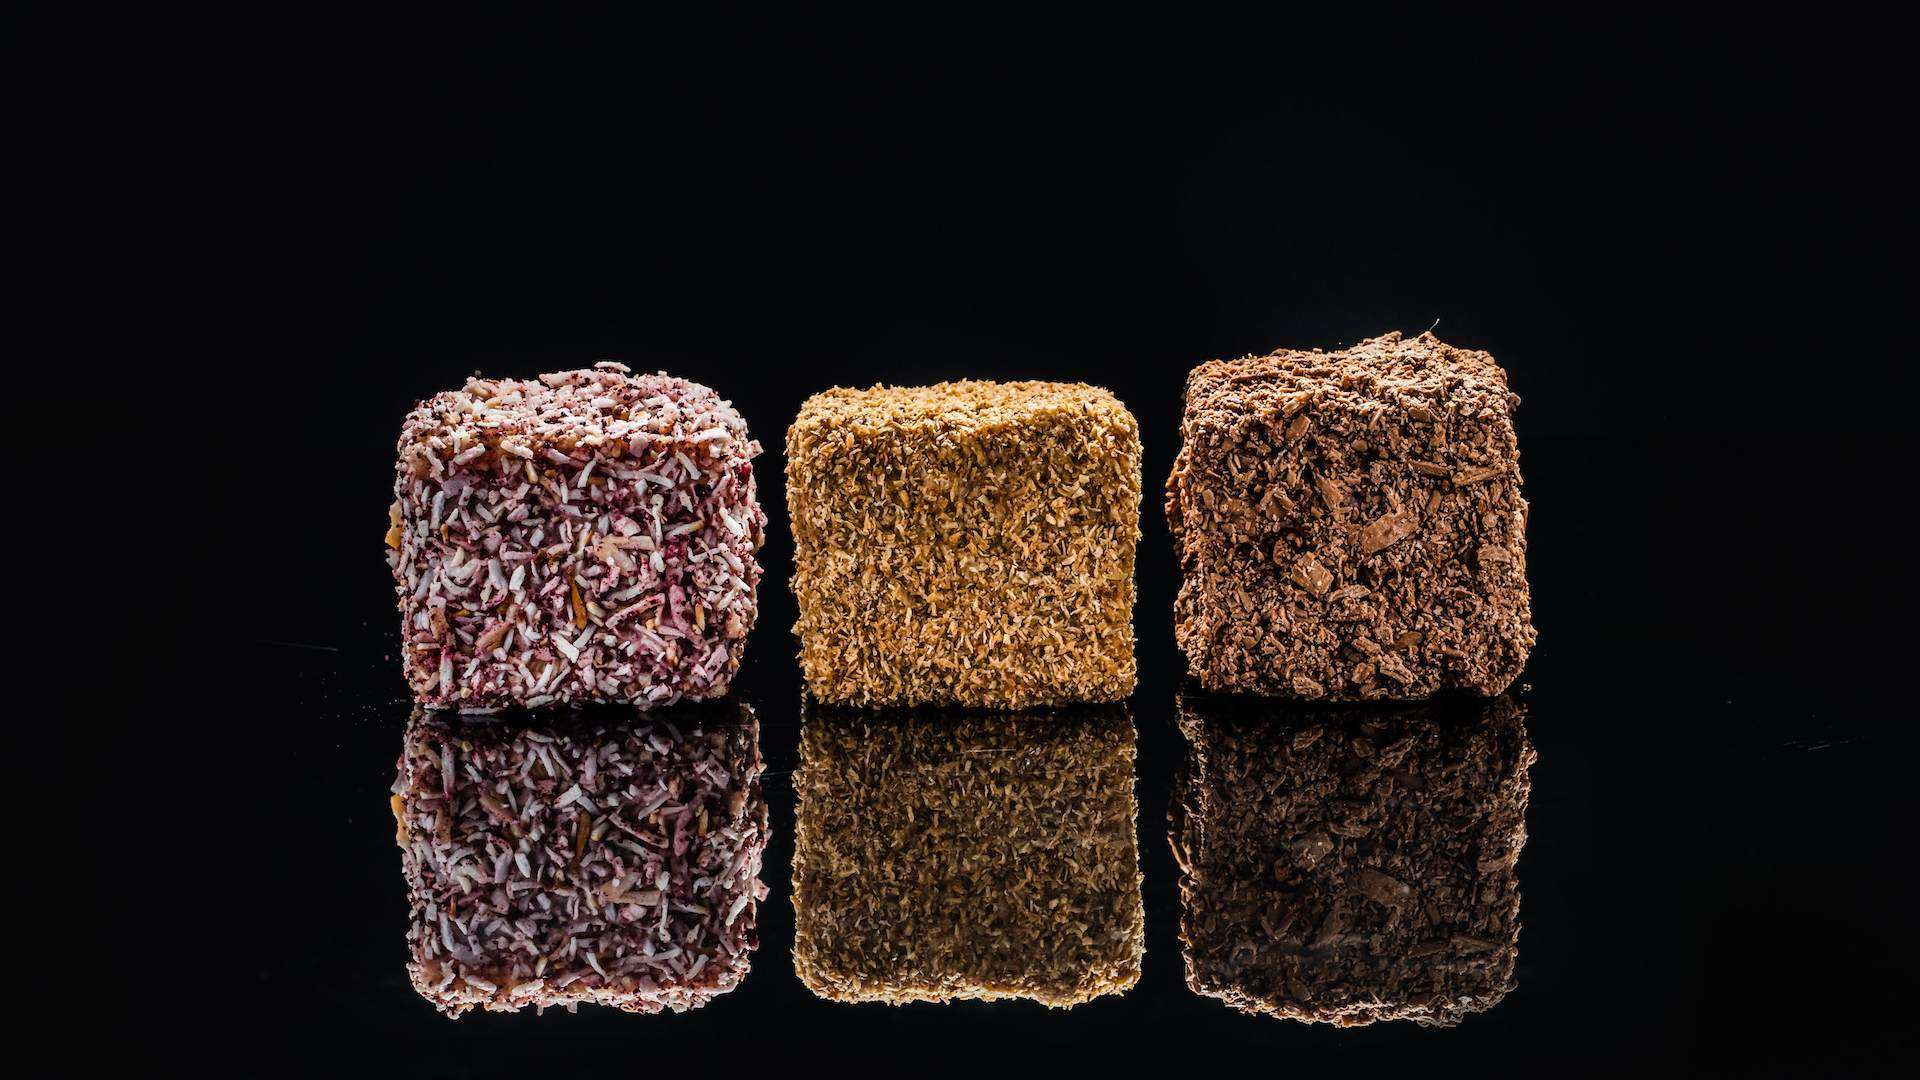 Tokyo Lamington Is Popping Up at Koko Black Stores Across Sydney and Melbourne for One Day Only